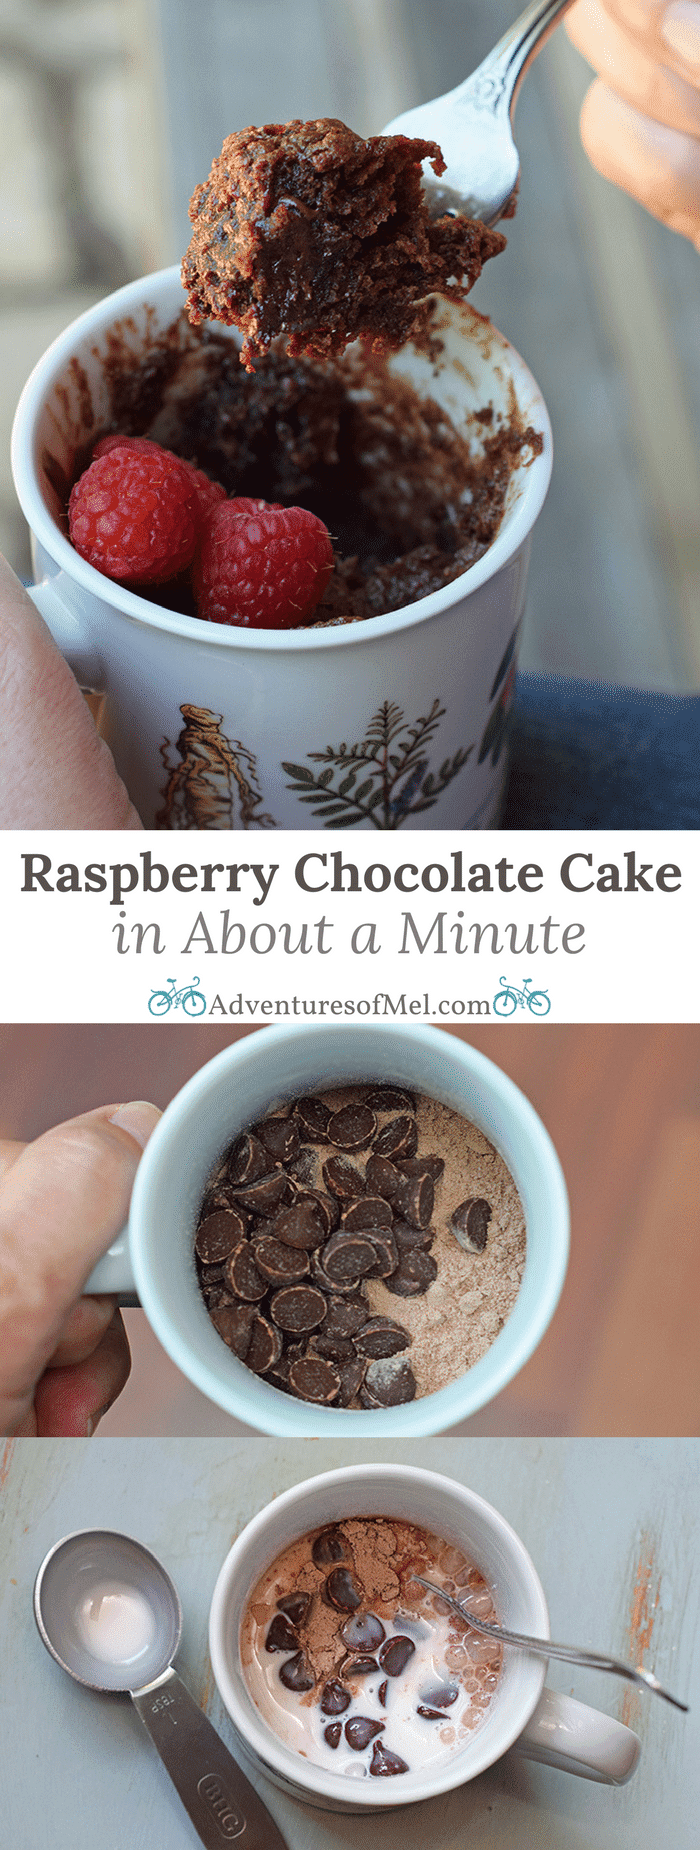 Craving a simple and easy dessert that will satisfy your sweet tooth but only take about a minute to make? How to make raspberry chocolate cake for 1 in about a minute. Print the recipe!